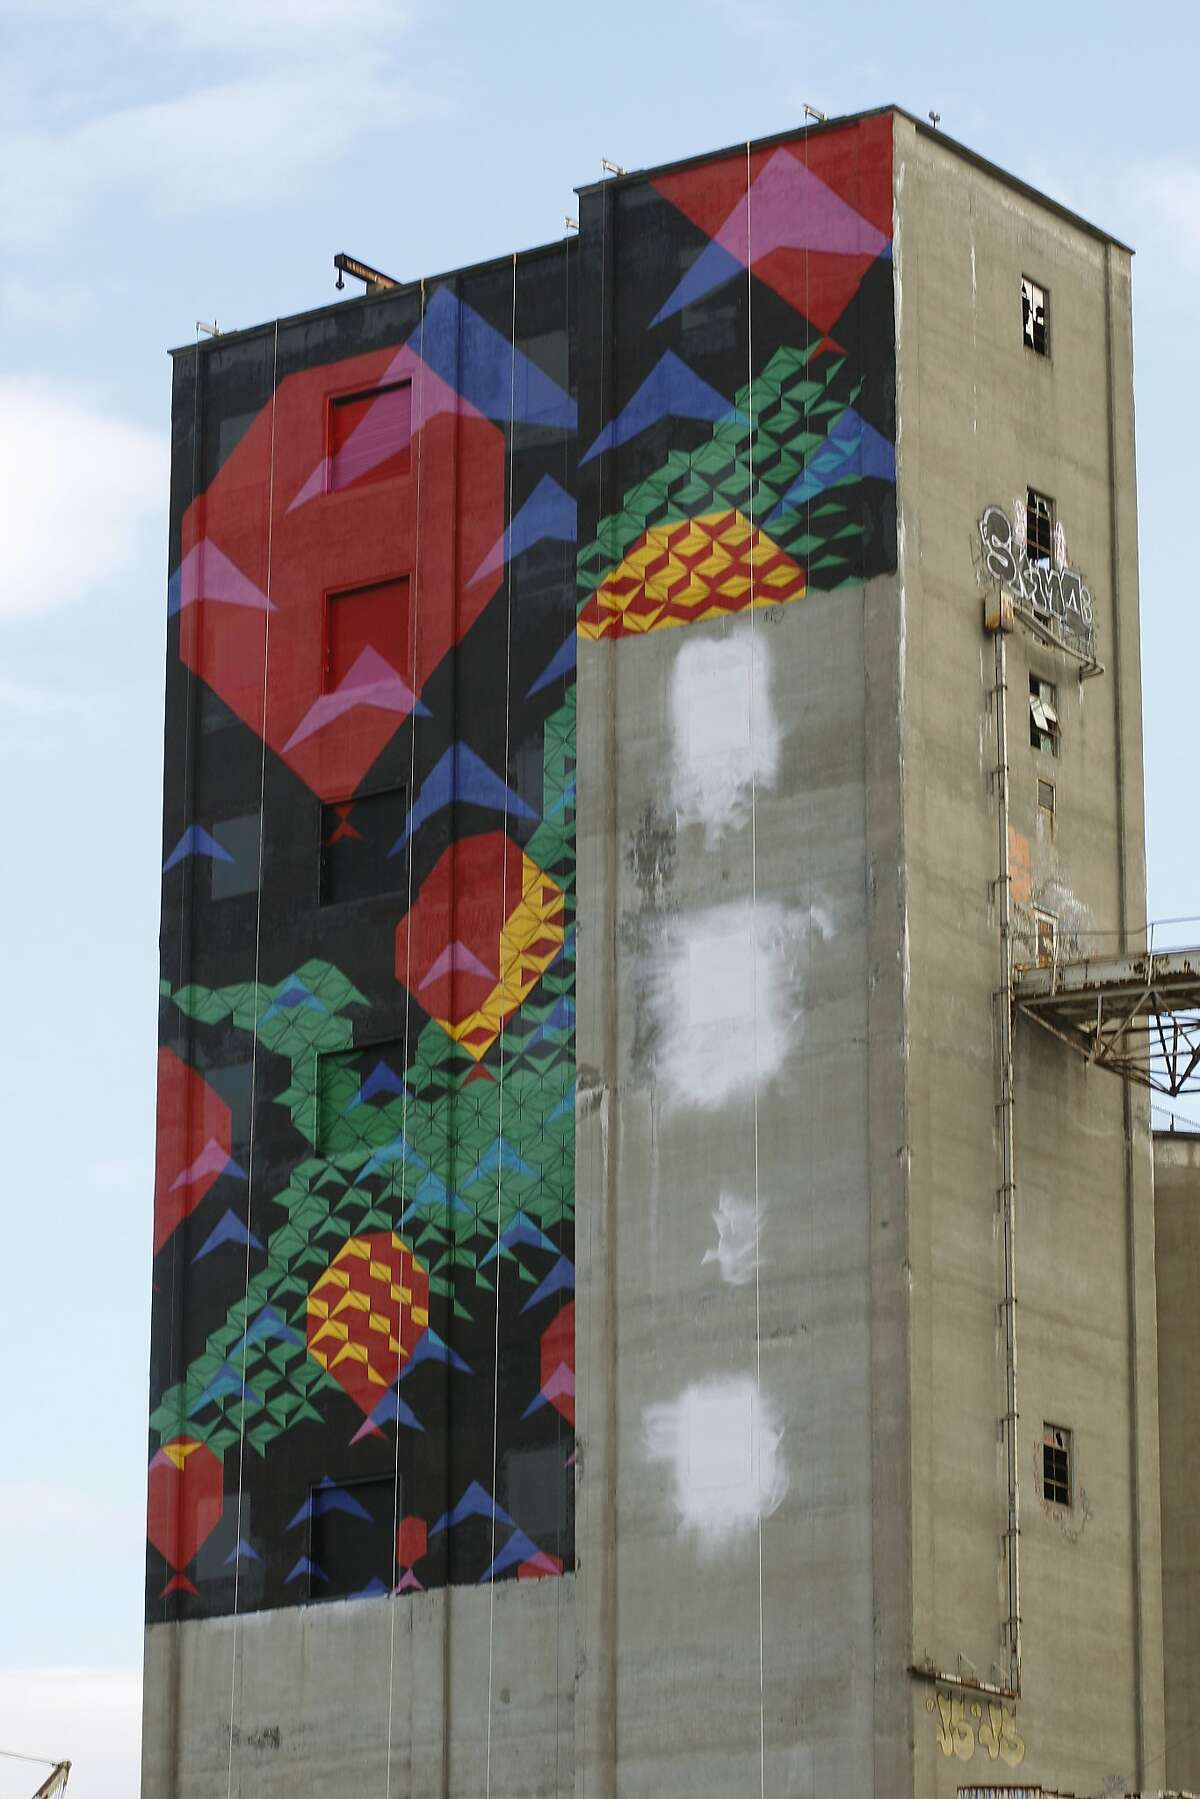 A new waterfront mural called 'Bayview Rise' is seen on an abandoned grain silo at Port Pier 92 in San Francisco, Calif., on Thursday, November 21, 2013. The art is being created in the Bayview by artists Laura Haddadd and Tom Drugan.